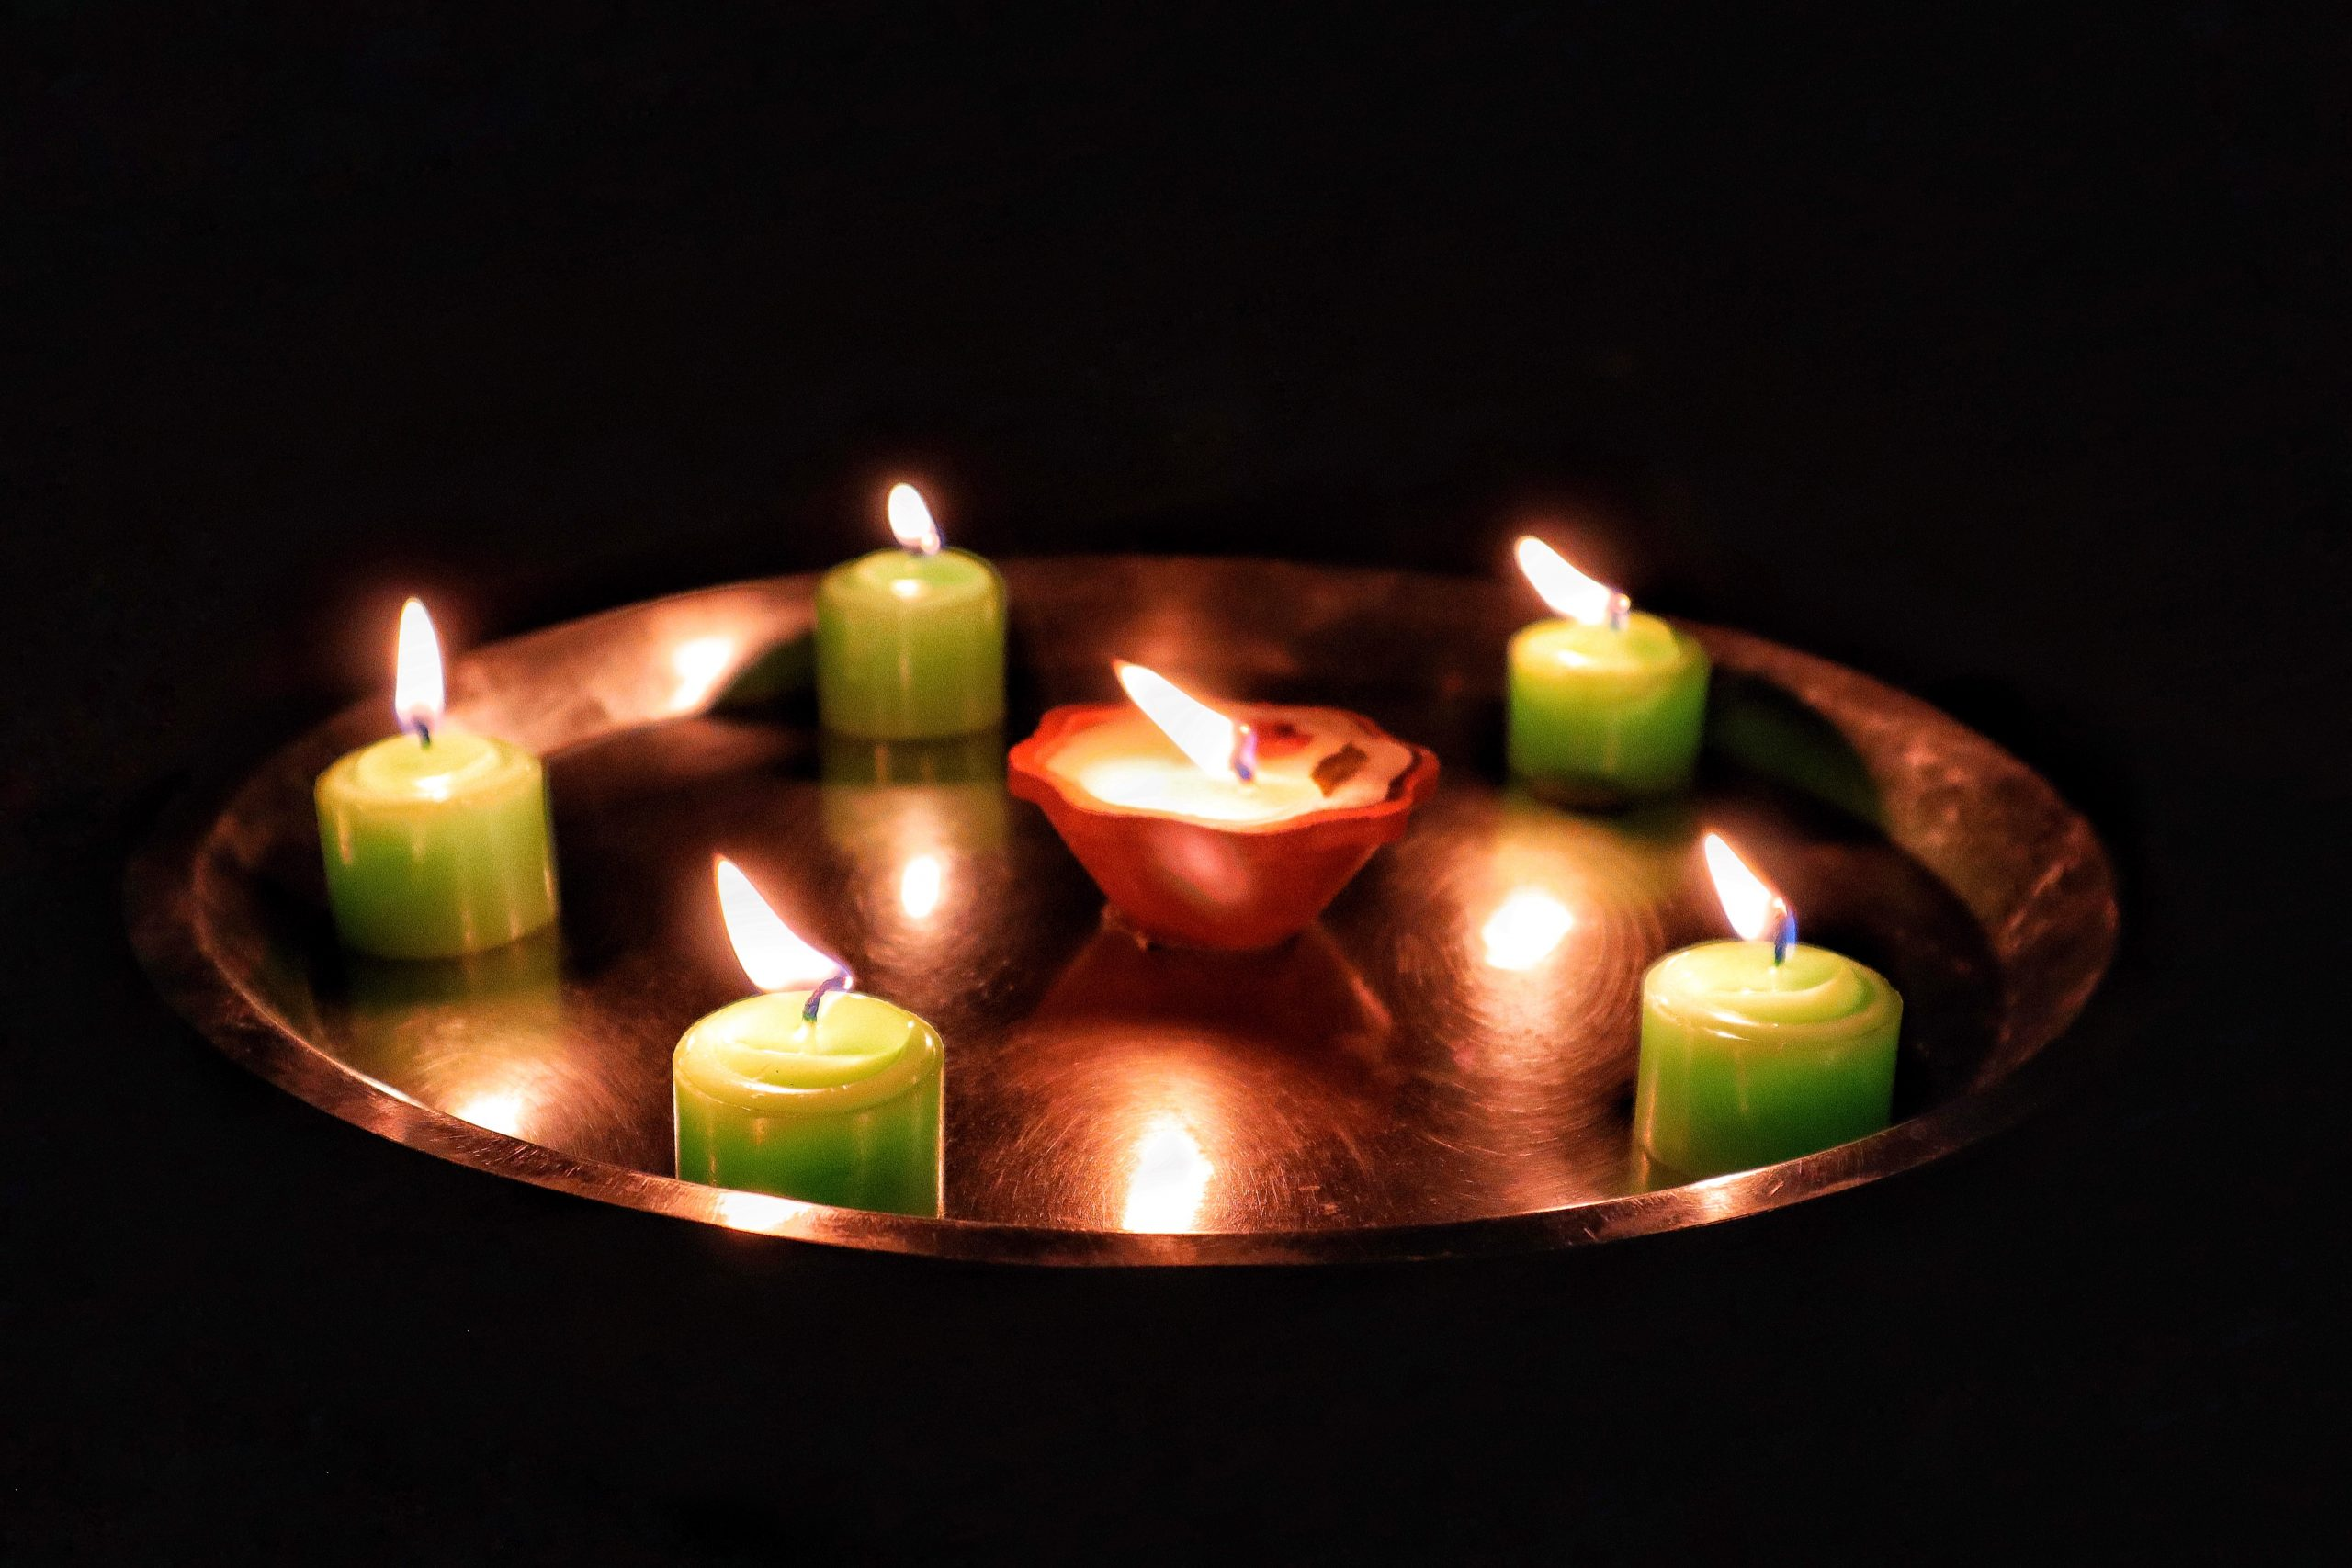 Candles in a tray